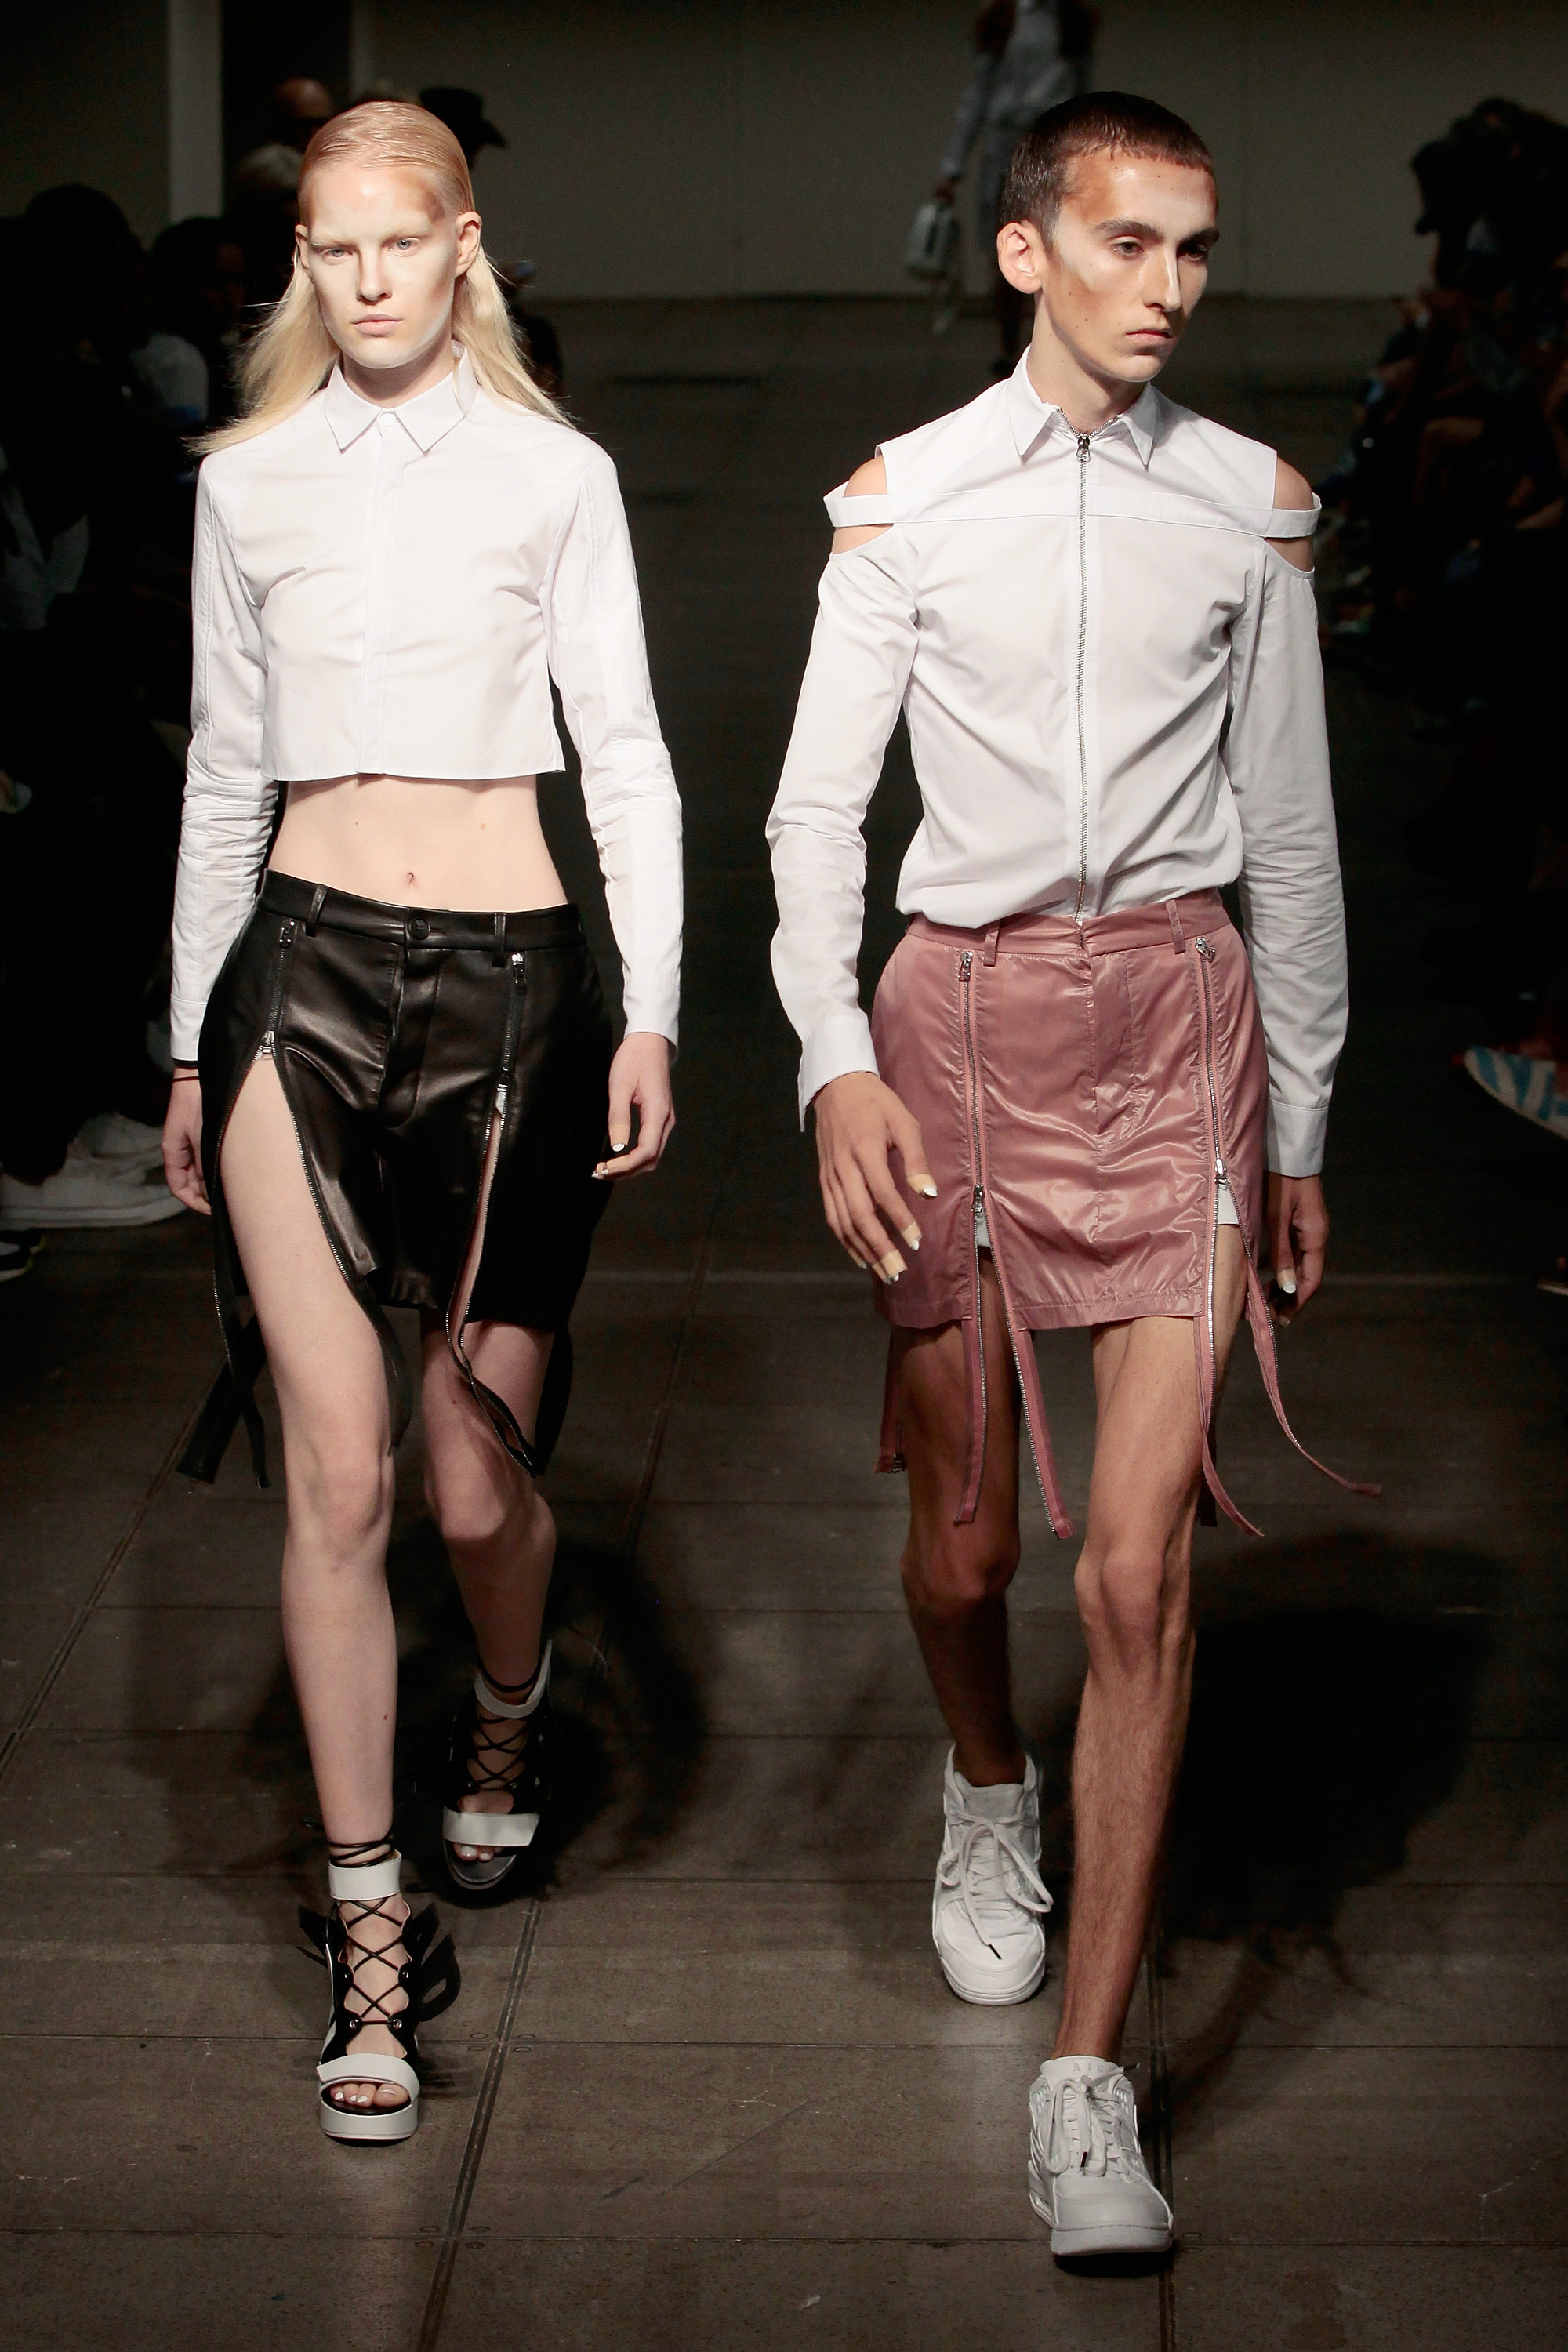 can we tie unisex fashion trends to gender equality? cnn styleUnisex #10